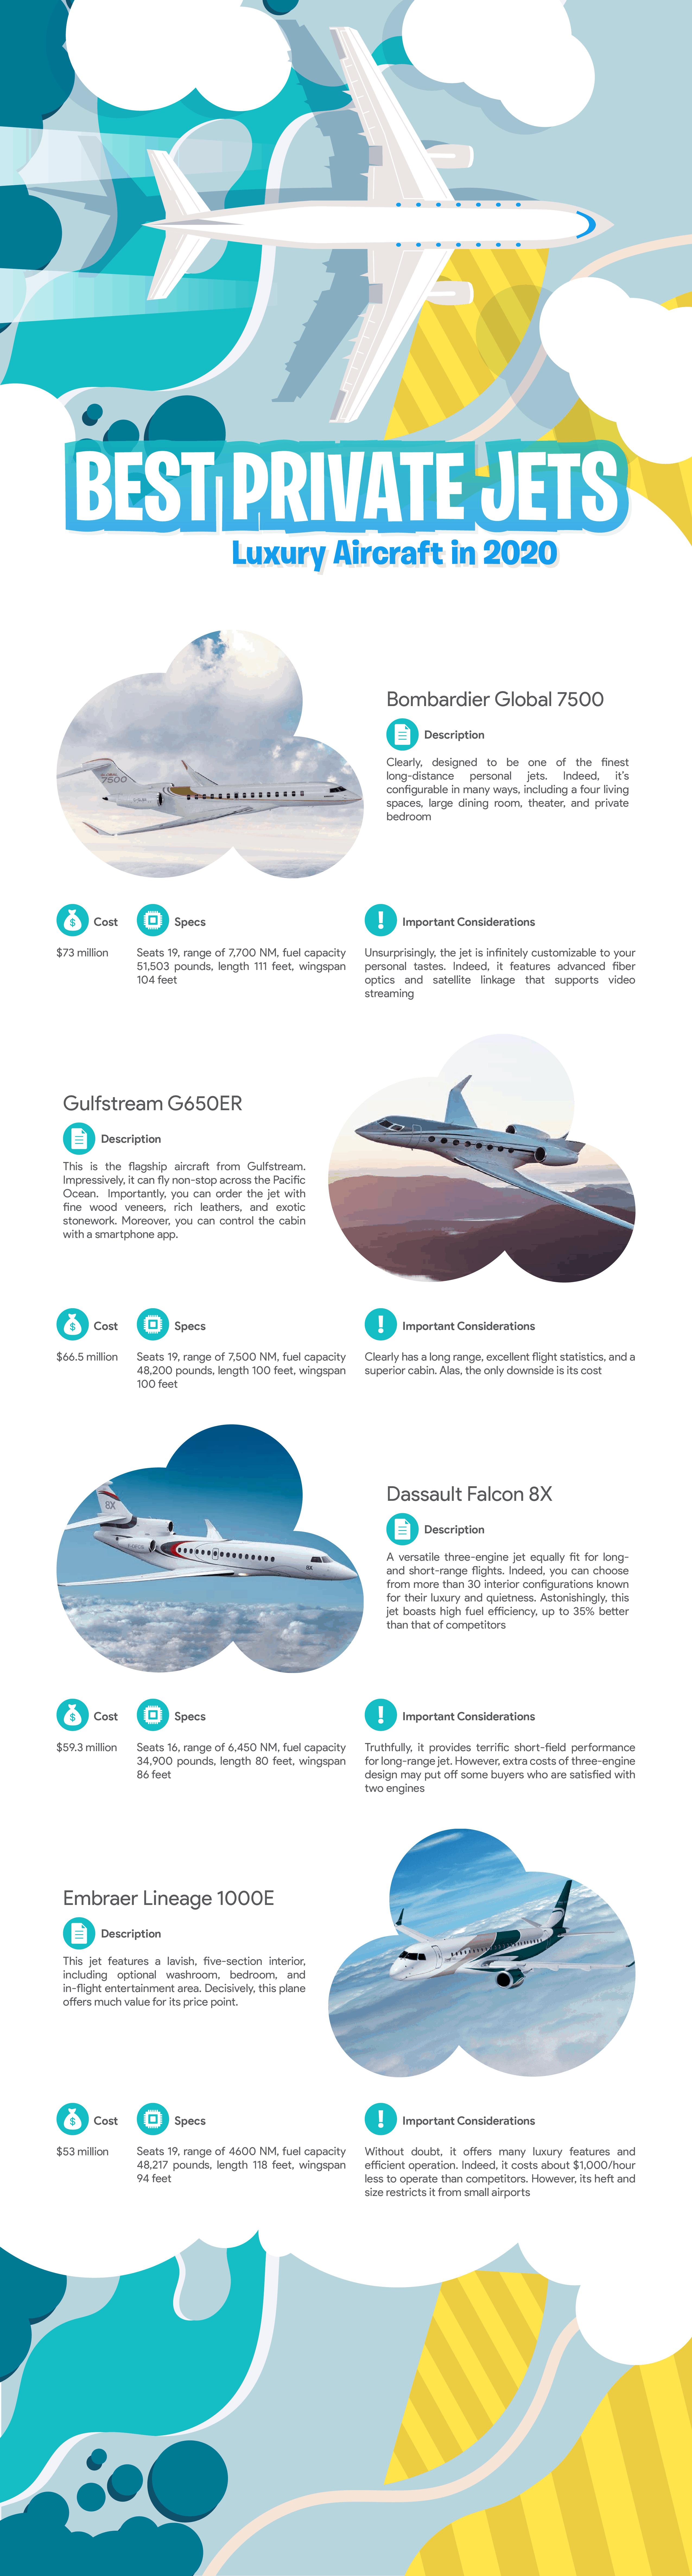 Best 4 Private Jets